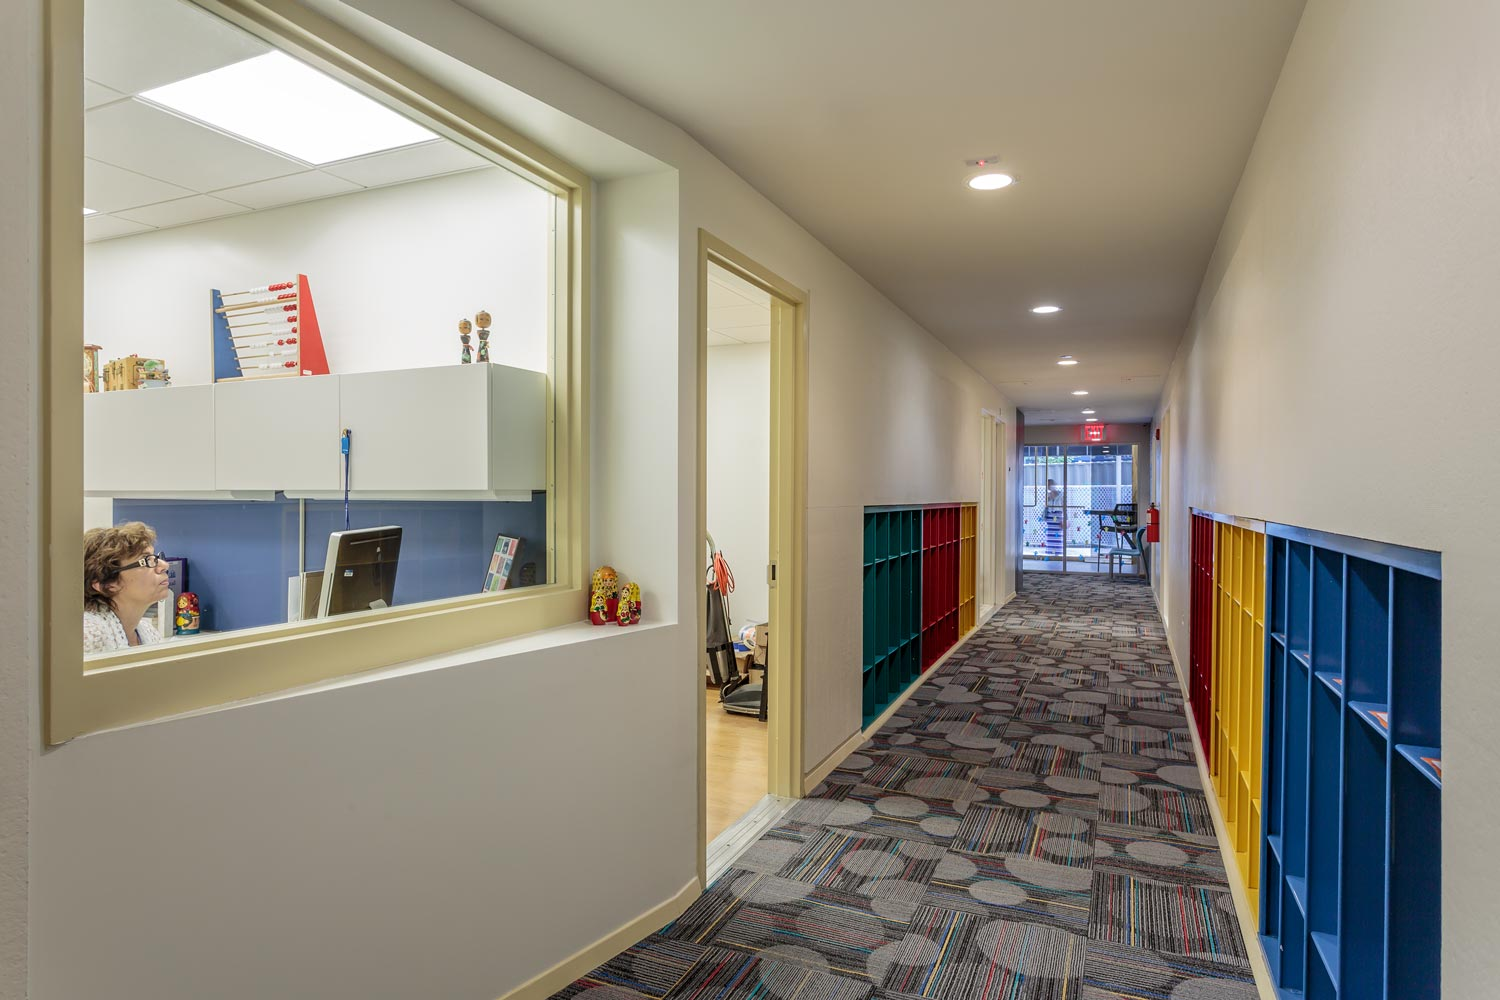 Big picture windows were introduced at the International Preschools adaptive reuse project